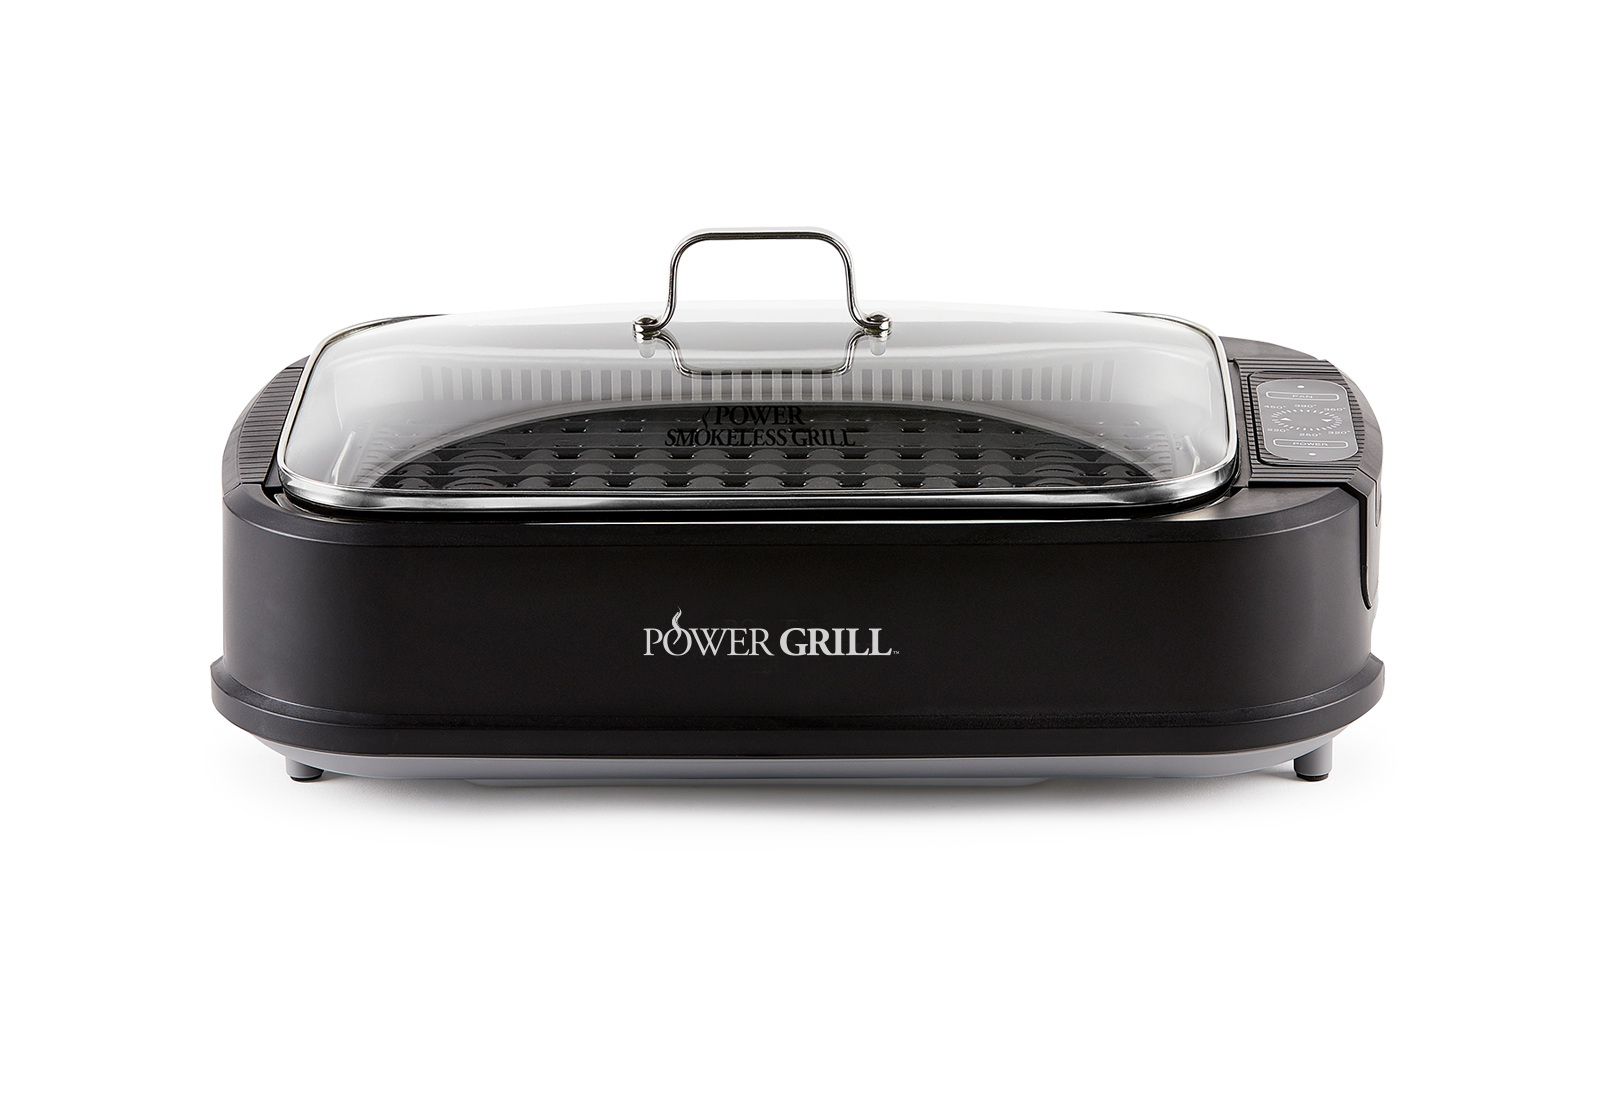 Power Grill Product Image